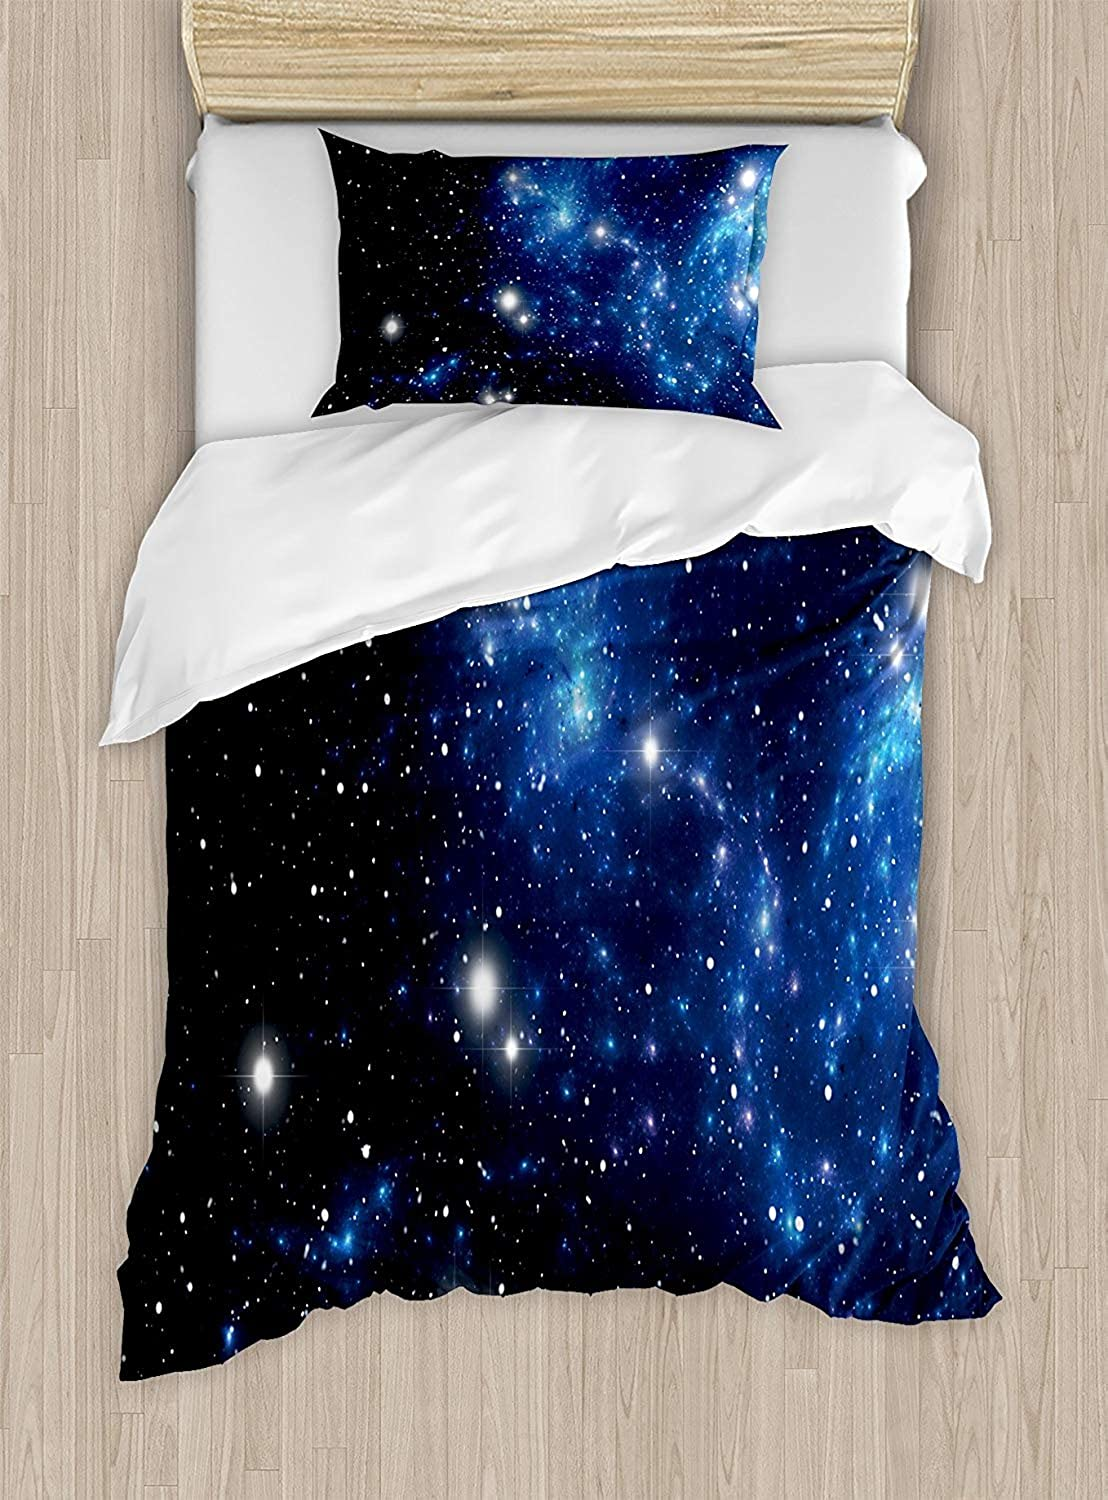 VpinkLV-HOME Constellation Duvet Cover Set Twin Size Outer Space Star Nebula Astral Cluster Astronomy Theme Galaxy Mystery Picture,Bedding Set for Teen 2Pcs,bluee Black White